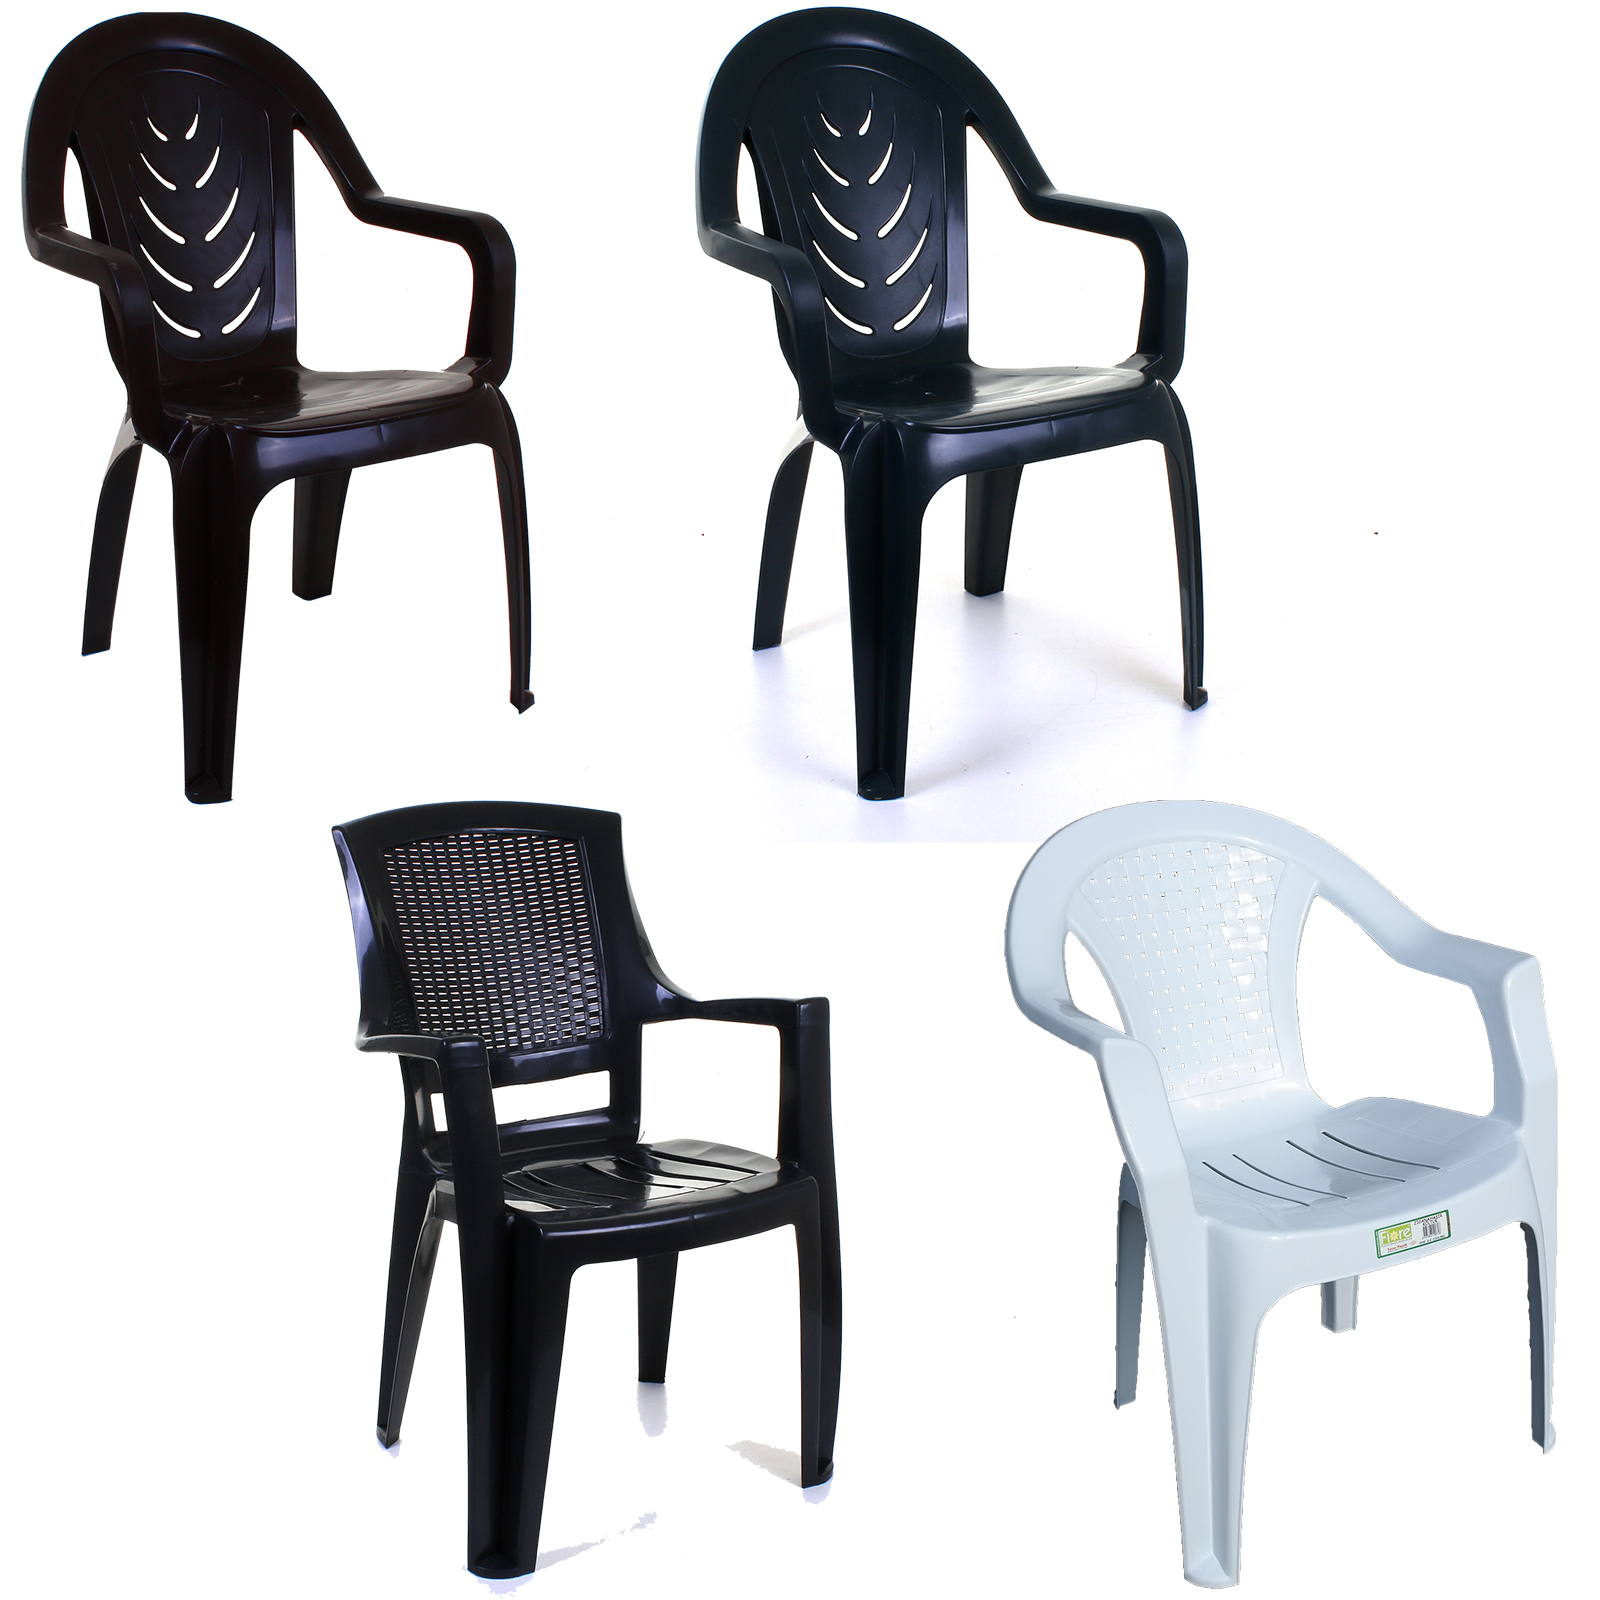 Garden Furniture Accessories Indoor Outdoor White